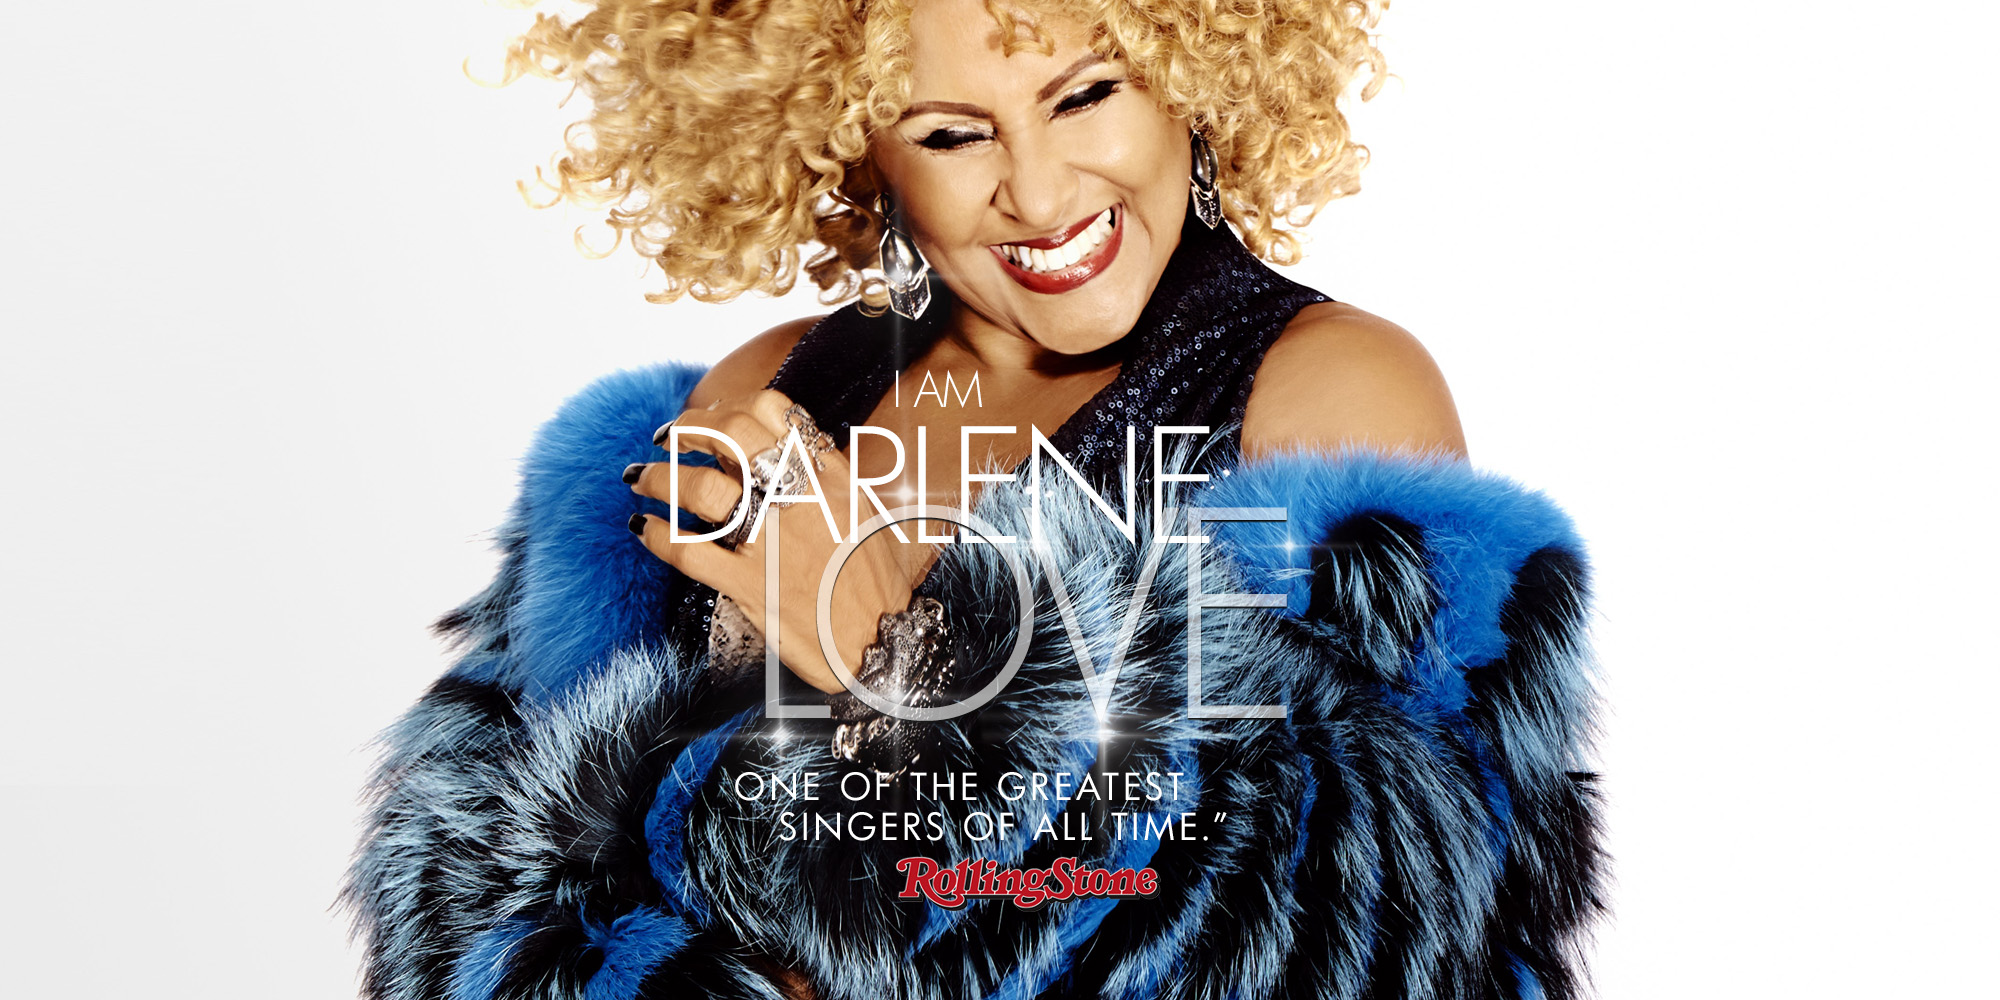 darlene love скачатьdarlene love all alone on christmas, darlene love скачать, darlene love christmas, darlene love christmas скачать, darlene love christmas mp3, darlene love winter wonderland, darlene love today i met the boy i'm gonna marry lyrics, darlene love white christmas, darlene love a fine fine boy, darlene love discography, darlene love today i met the boy, darlene love alley oop, darlene love all alone on christmas lyrics, darlene love home alone, darlene love lean on me, darlene love слушать, darlene love christmas перевод, darlene love baby come home, darlene love lyrics, darlene love paint another picture